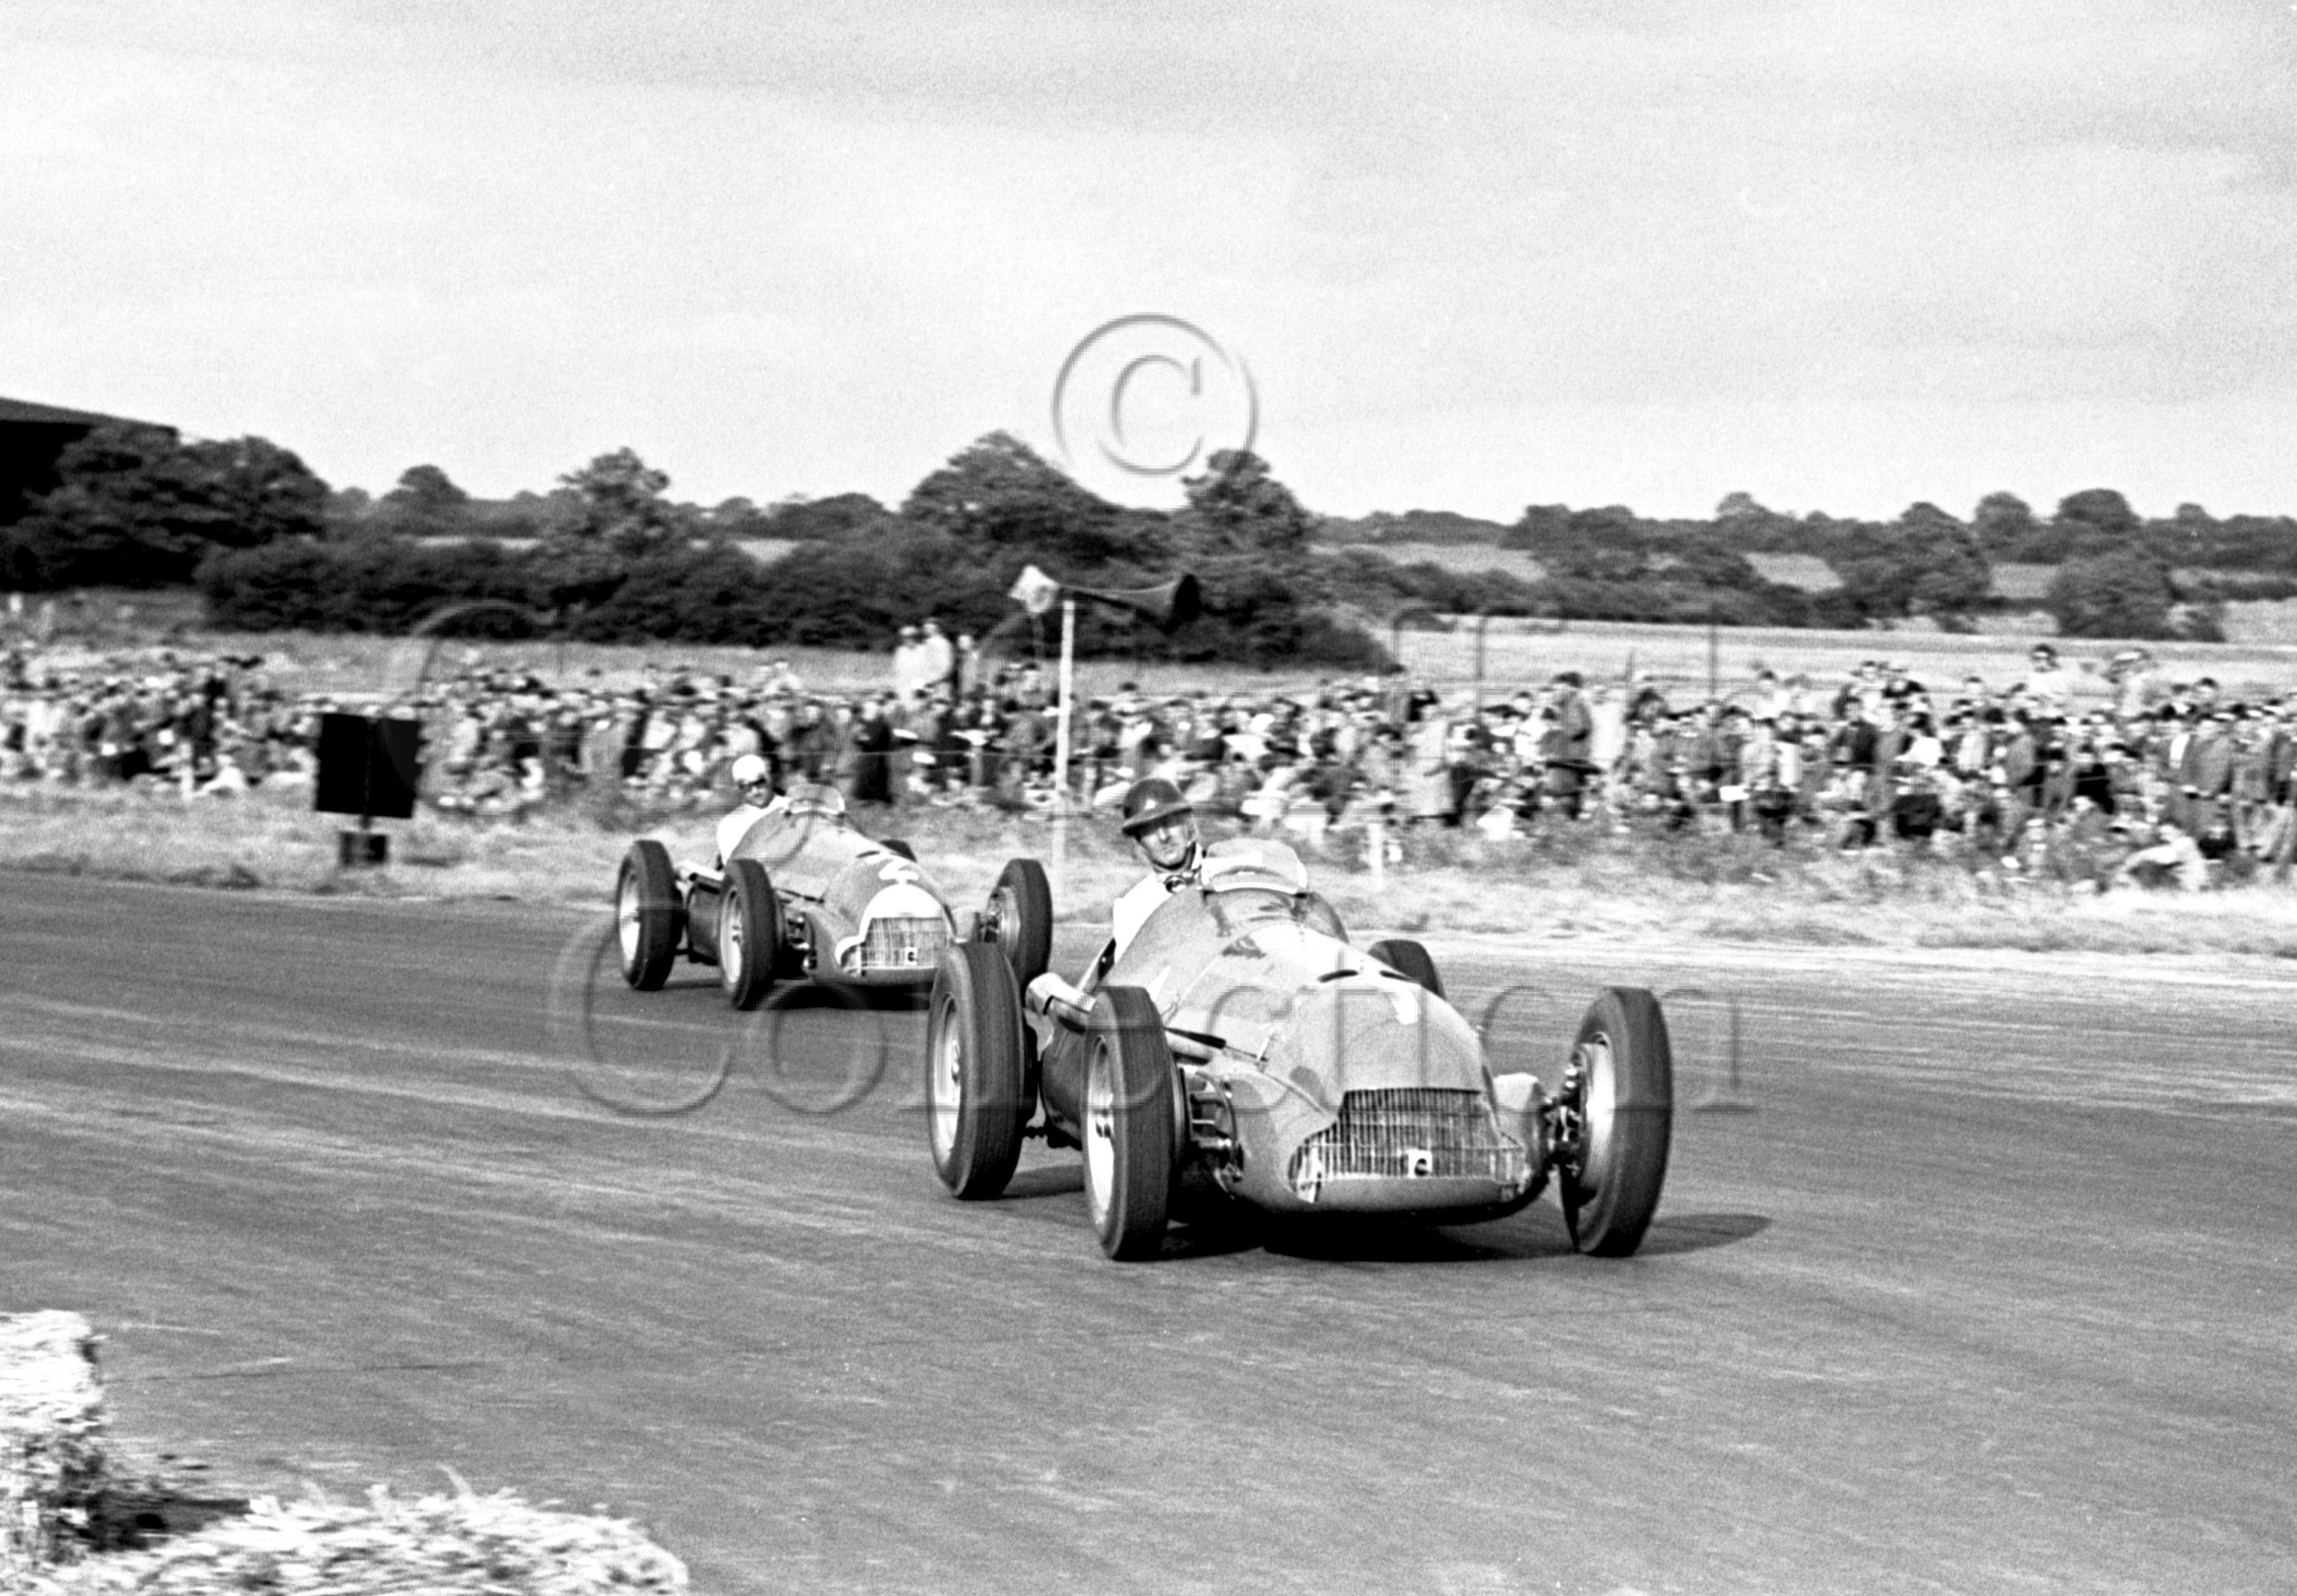 36-53–G-Farina–J-Fangio–Alfa-Romeo-158–Silverstone–26-08-1950.jpg - The Guy Griffiths Collection